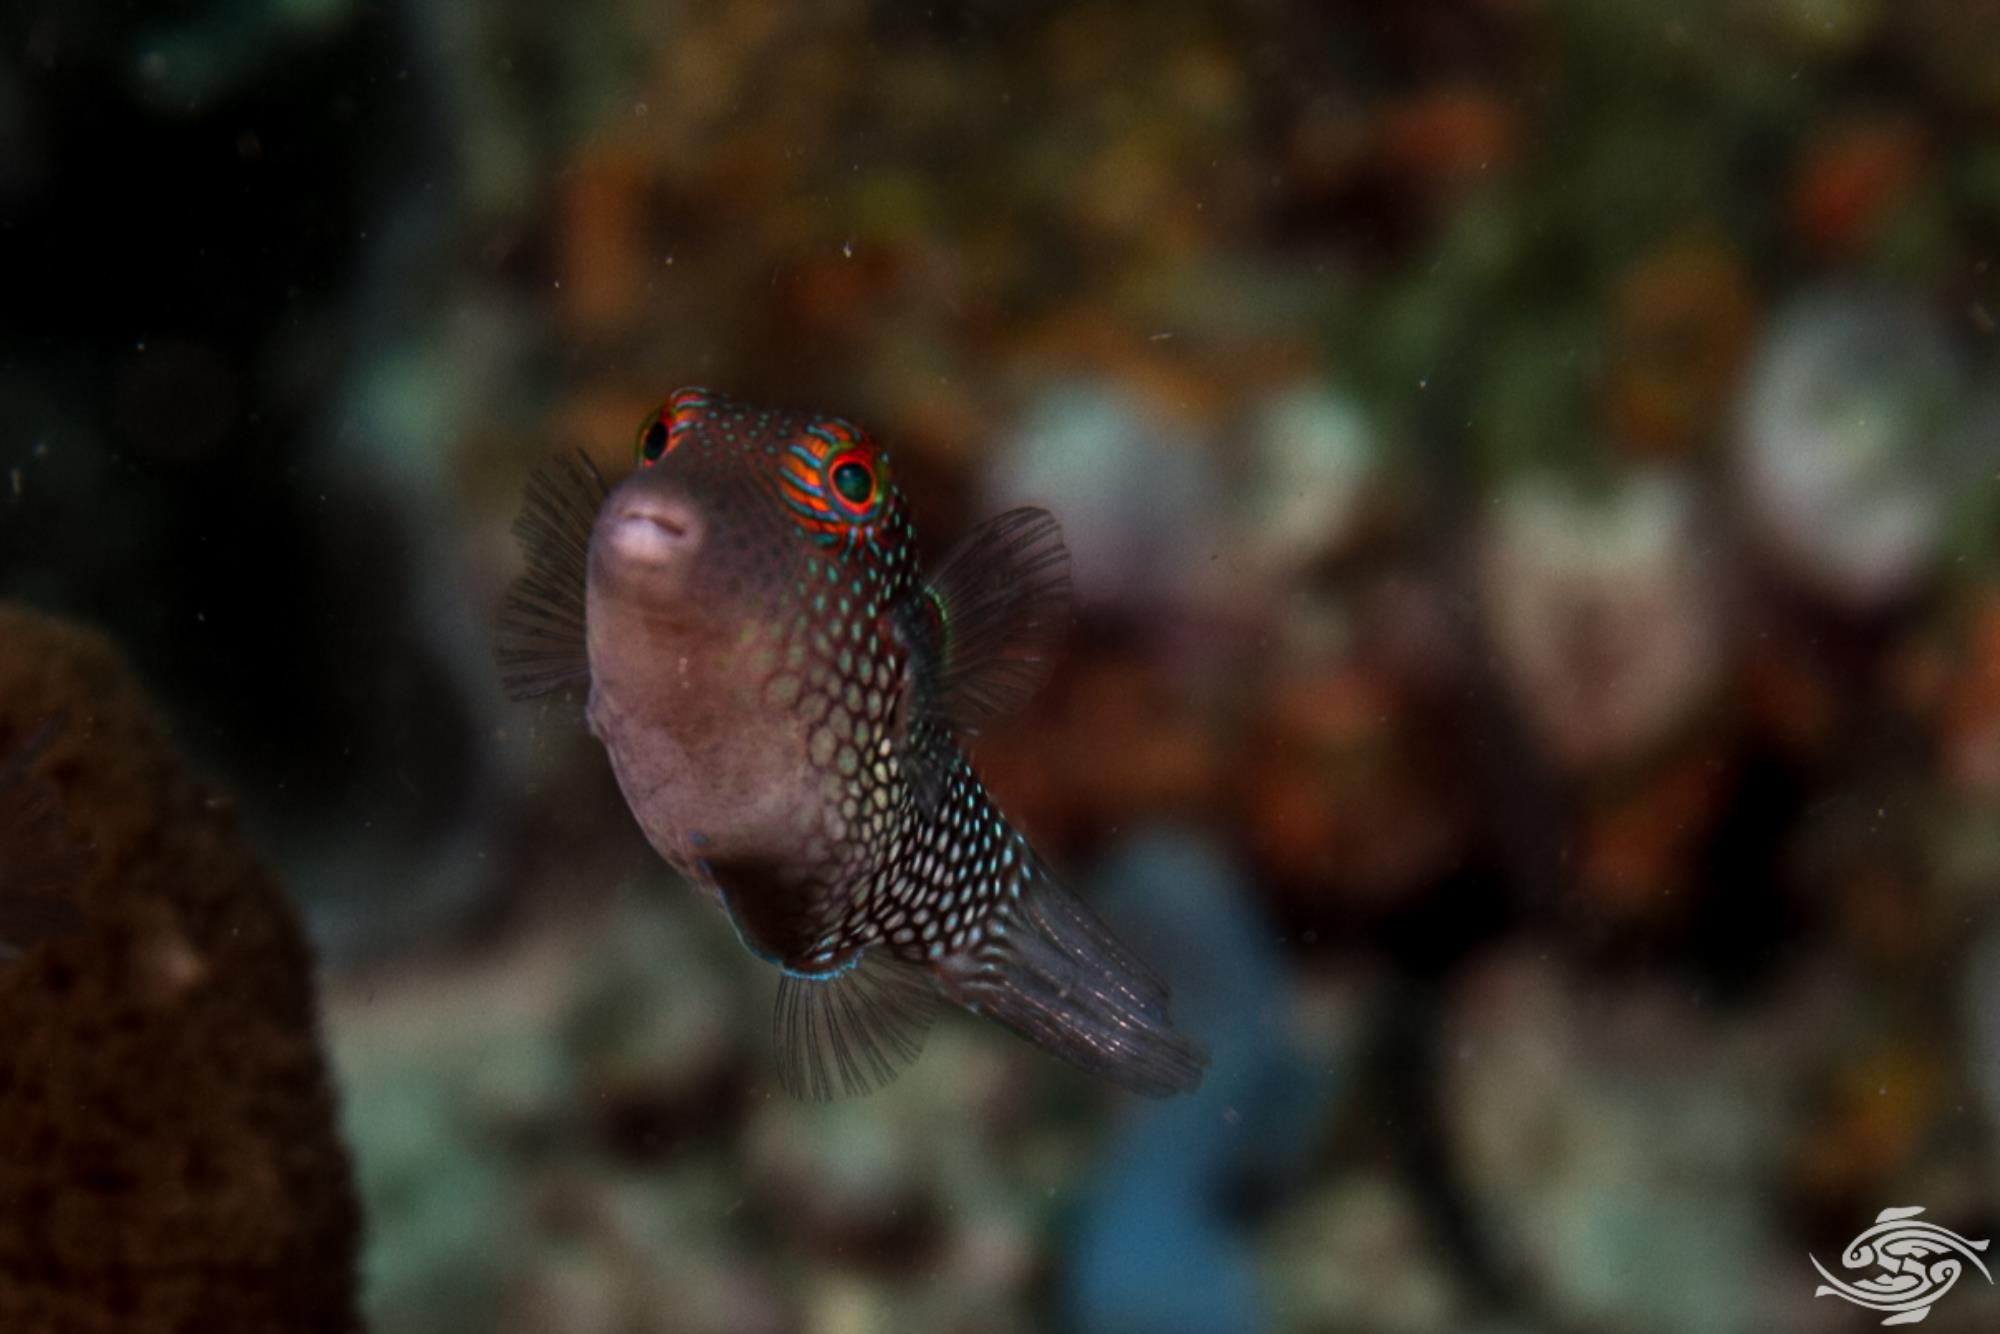 Honeycomb Toby (Canthigaster janthinoptera) also known as Spotted Puffer, Spotted Pufferfish, Spotted Toby, White-spotted Pufferfish